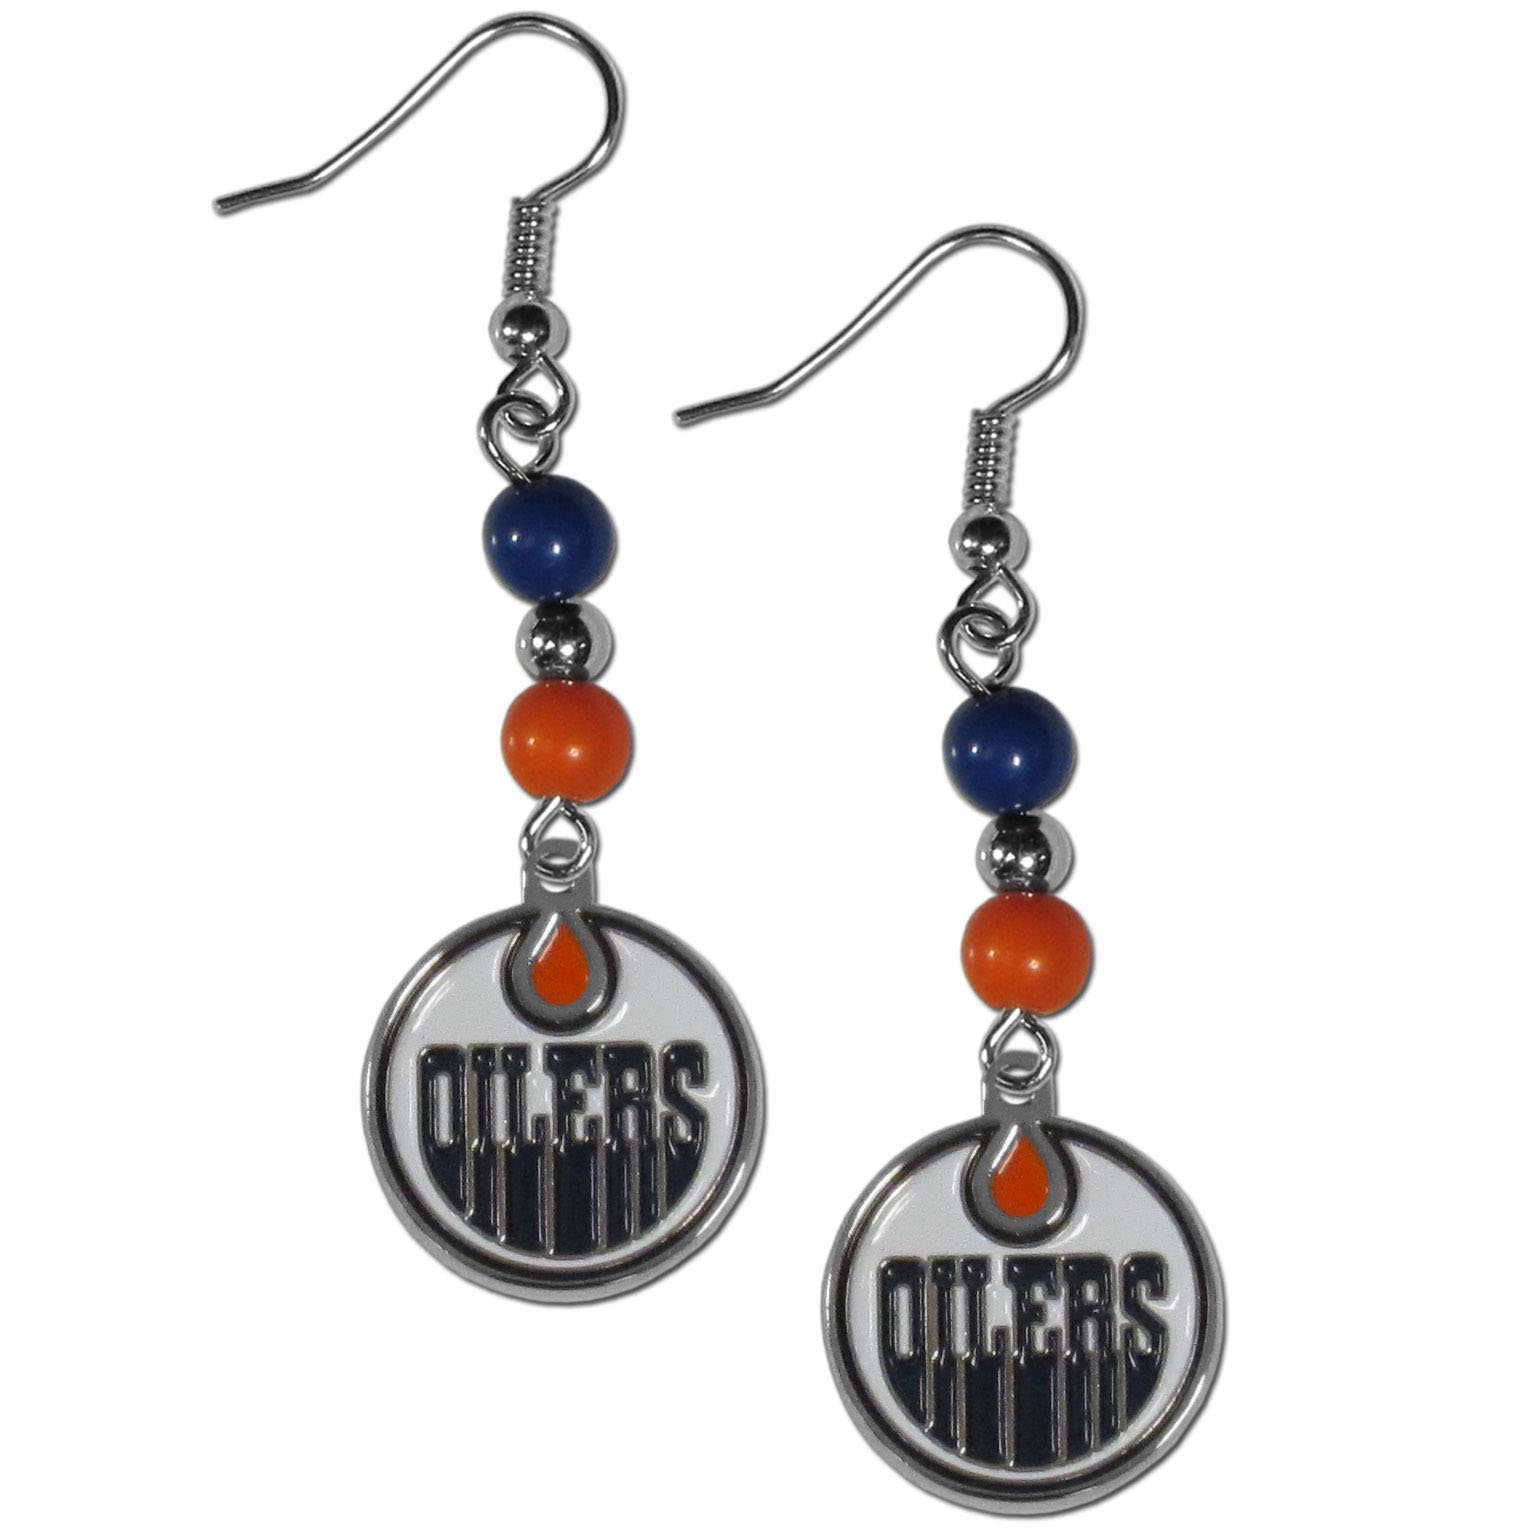 Edmonton Oilers® Fan Bead Dangle Earrings - Love your team, show it off with our Edmonton Oilers® bead dangle earrings! These super cute earrings hang approximately 2 inches and features 2 team colored beads and a high polish team charm. A must have for game day!